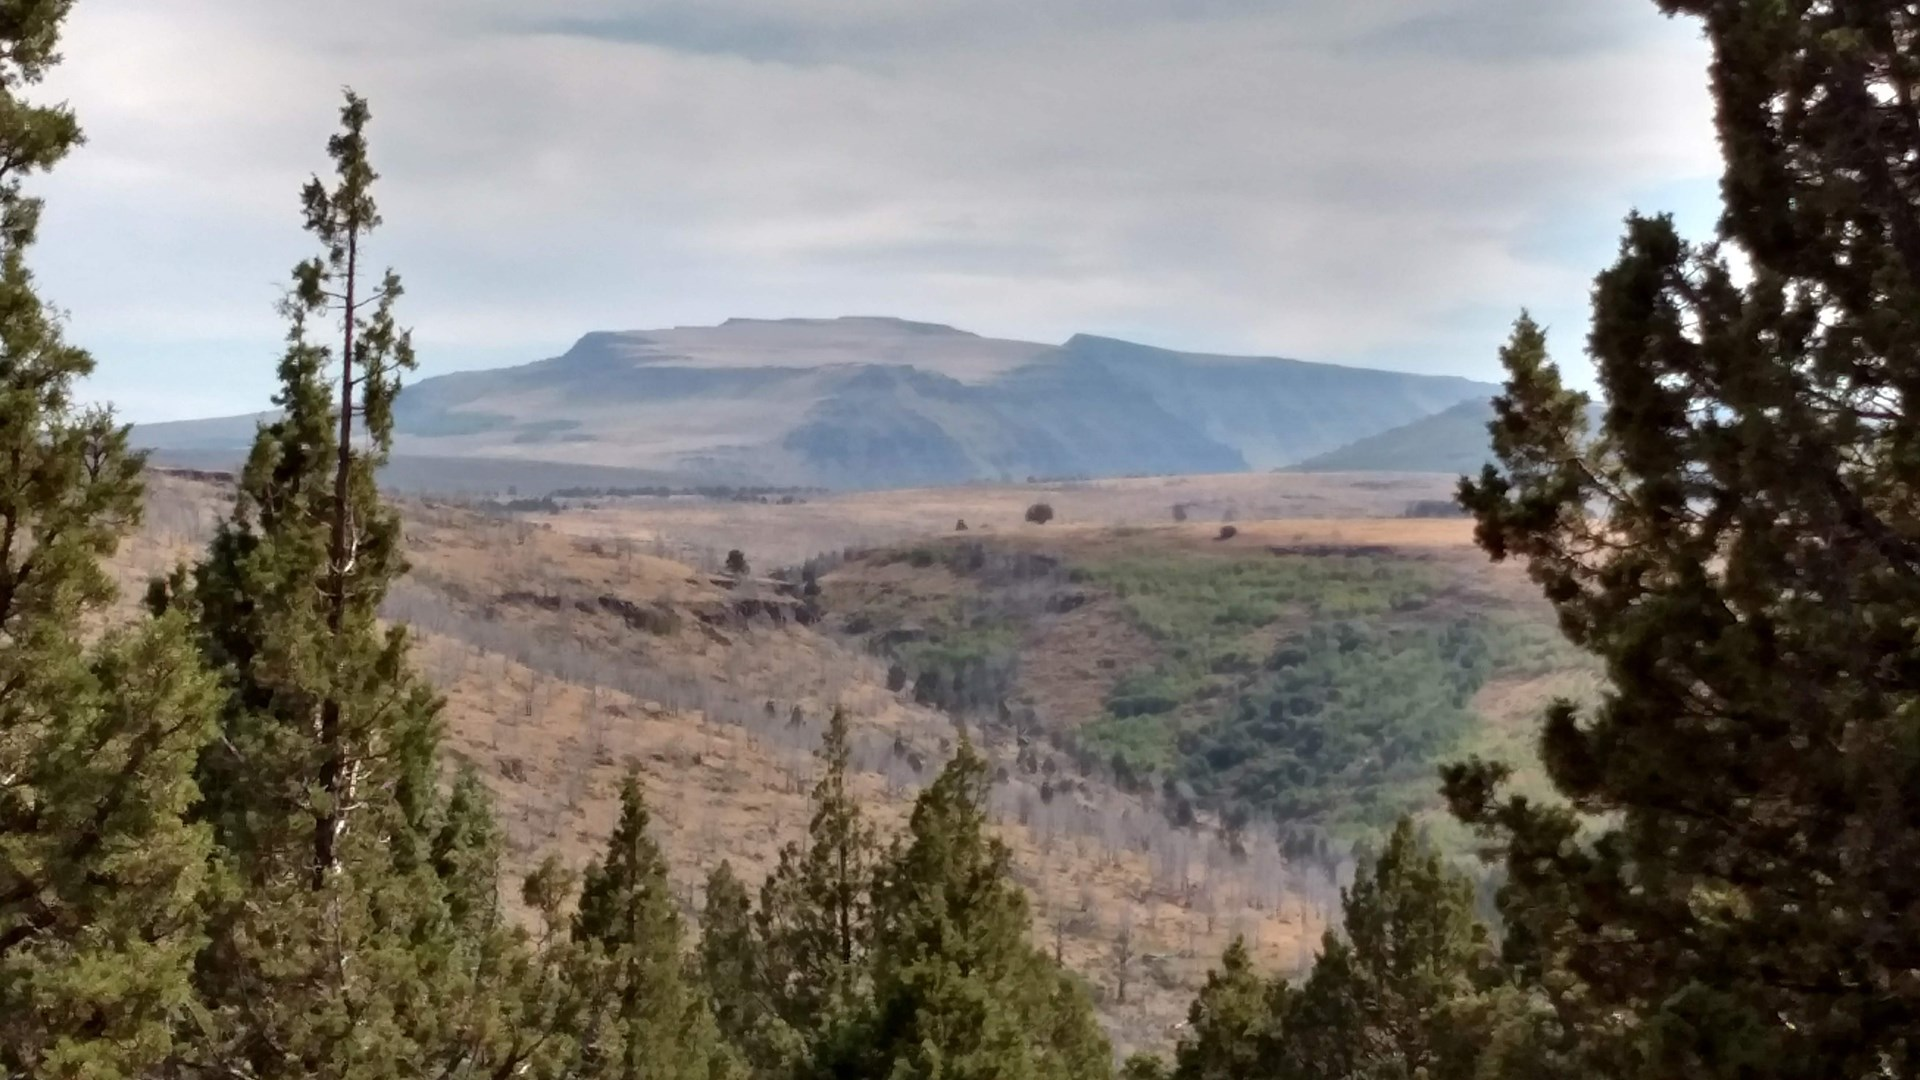 MCCOY CREEK ACREAGE - STEENS MOUNTAIN HIDDEN GEM!